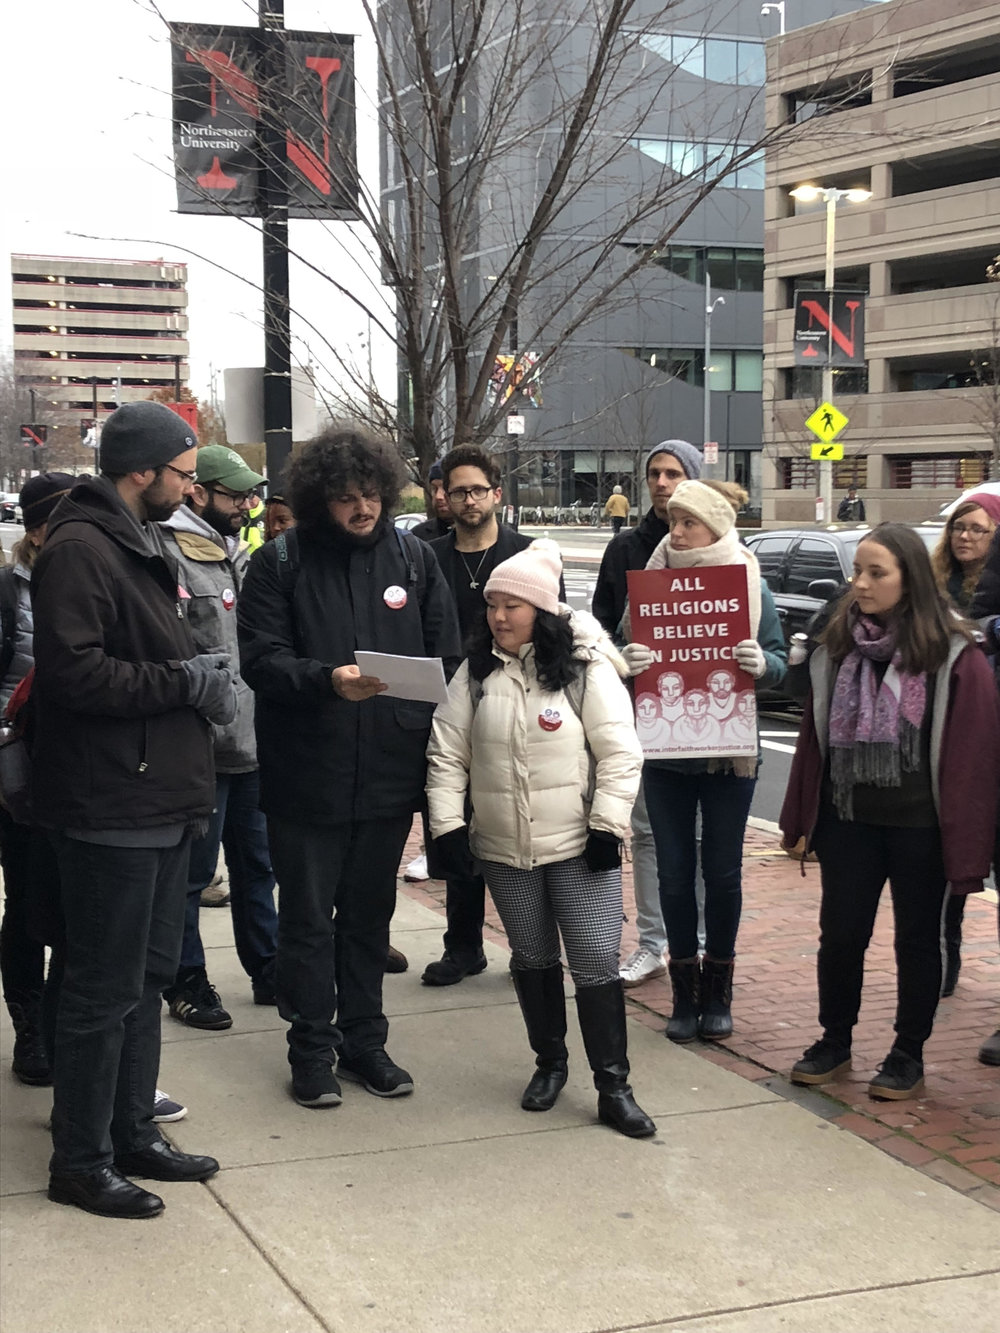 About 50 faculty, students, union members and community allies gathered at Northeastern to deliver the letter to President Aoun calling on him to respect the full-time non-tenure-track faculty's right to vote. See below for some pictures from the action.